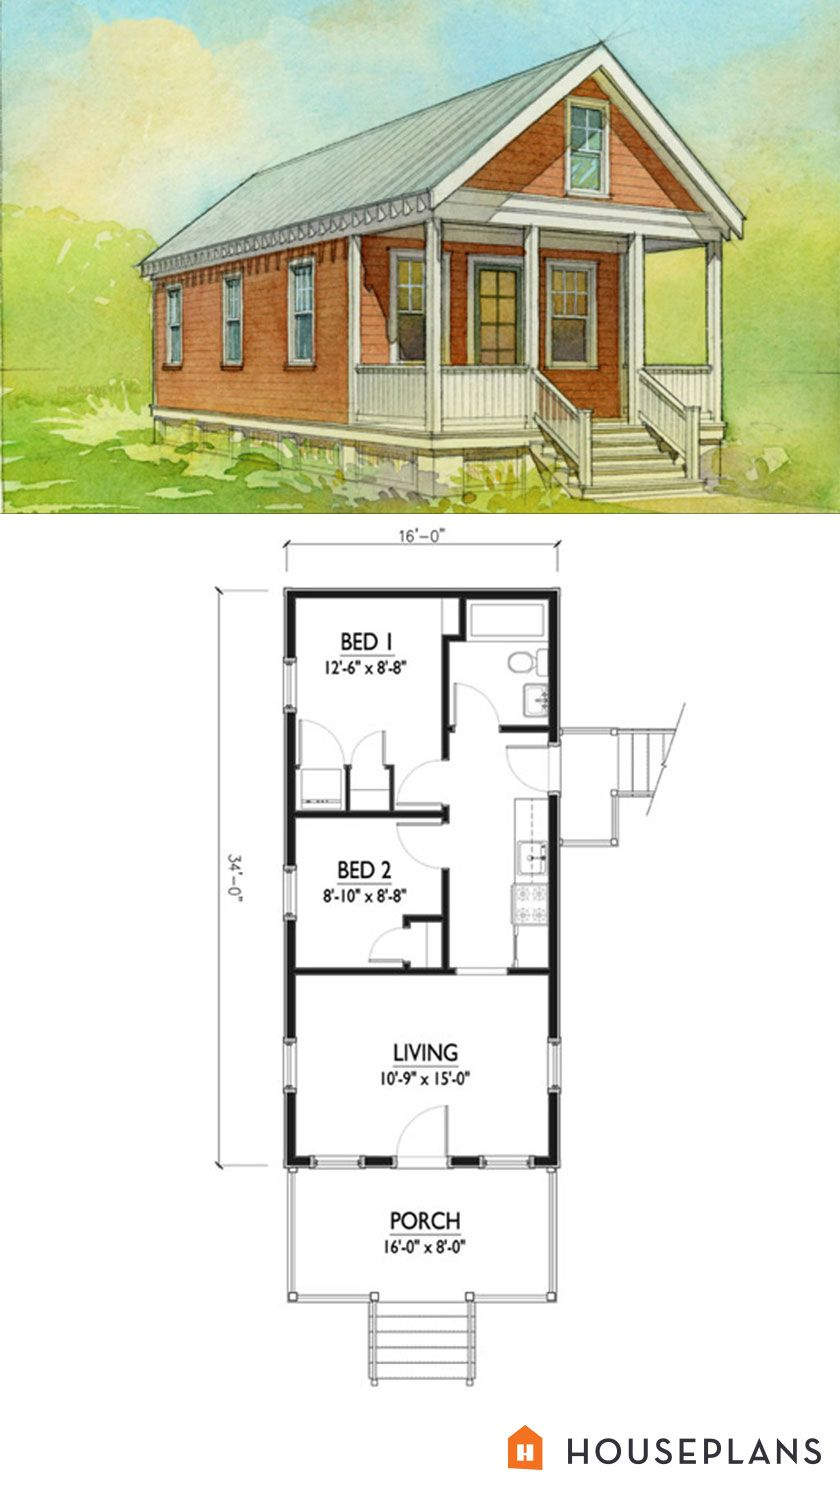 Small katrina cottage house plan 500sft 2br 1 bath by for Mini house plans